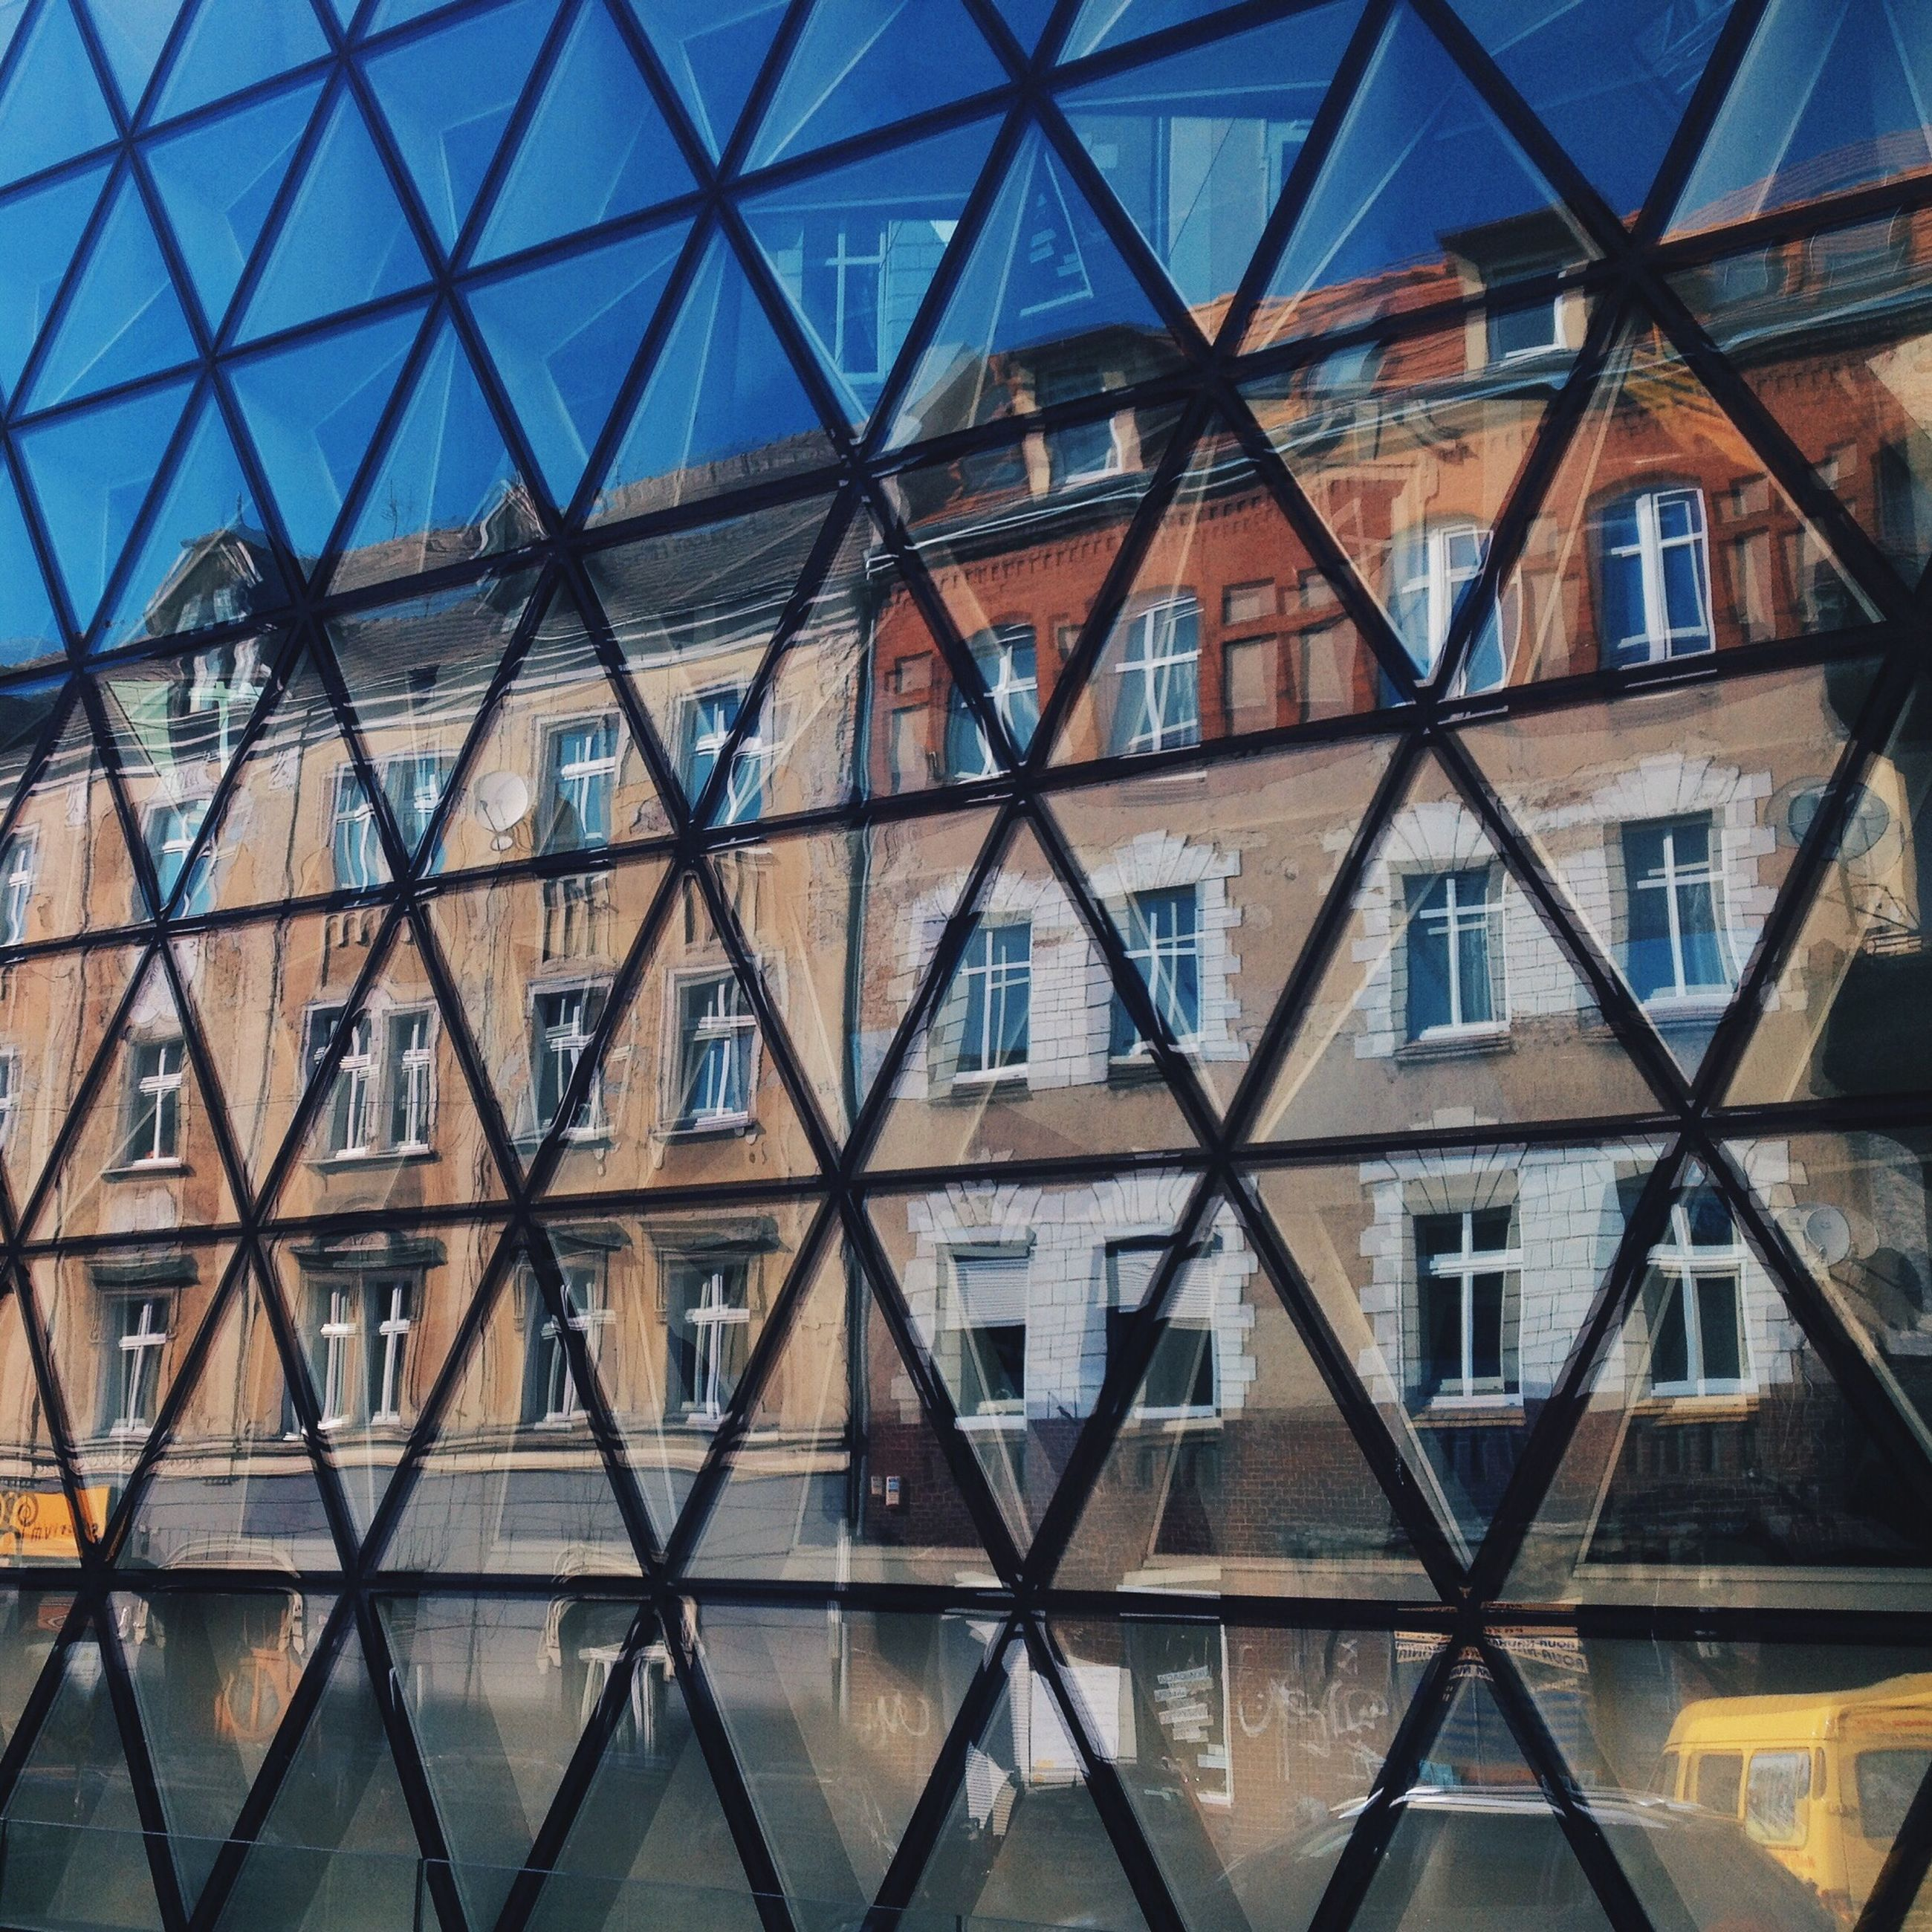 architecture, built structure, window, building exterior, full frame, glass - material, low angle view, pattern, backgrounds, indoors, reflection, building, geometric shape, architectural feature, design, day, repetition, glass, no people, transparent